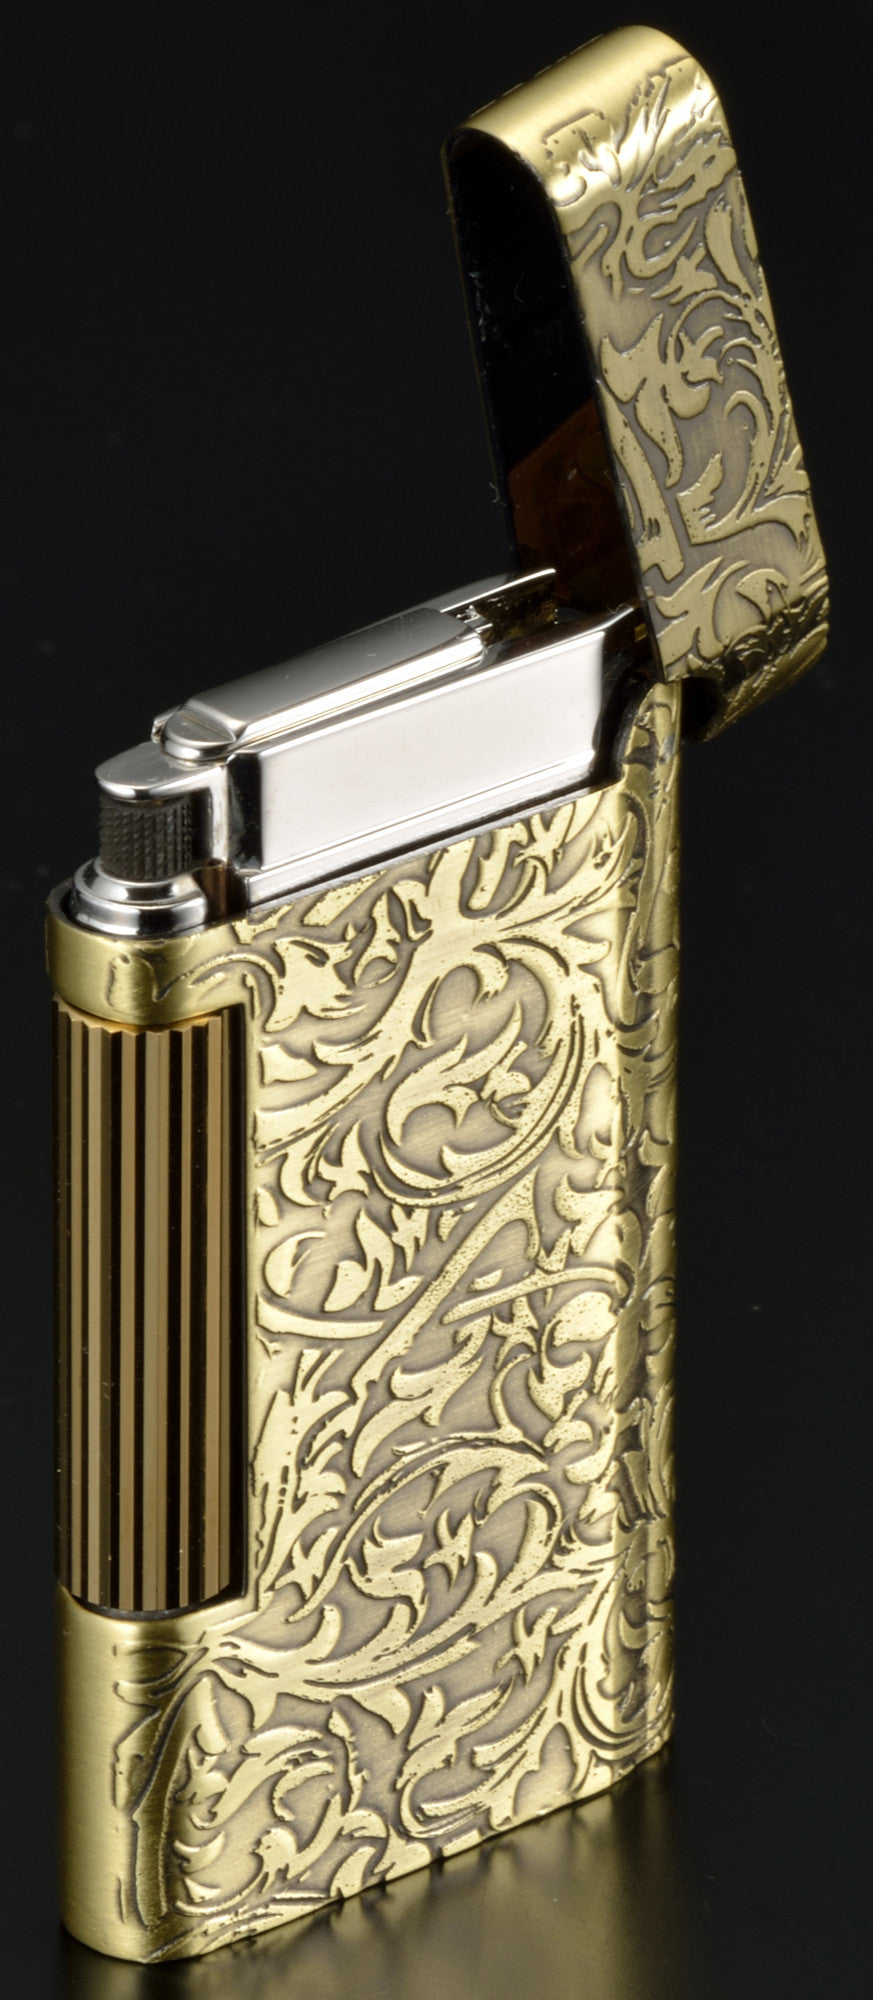 Sarome Flint Cigarette Lighter SD8-24 Antique silver arabesque